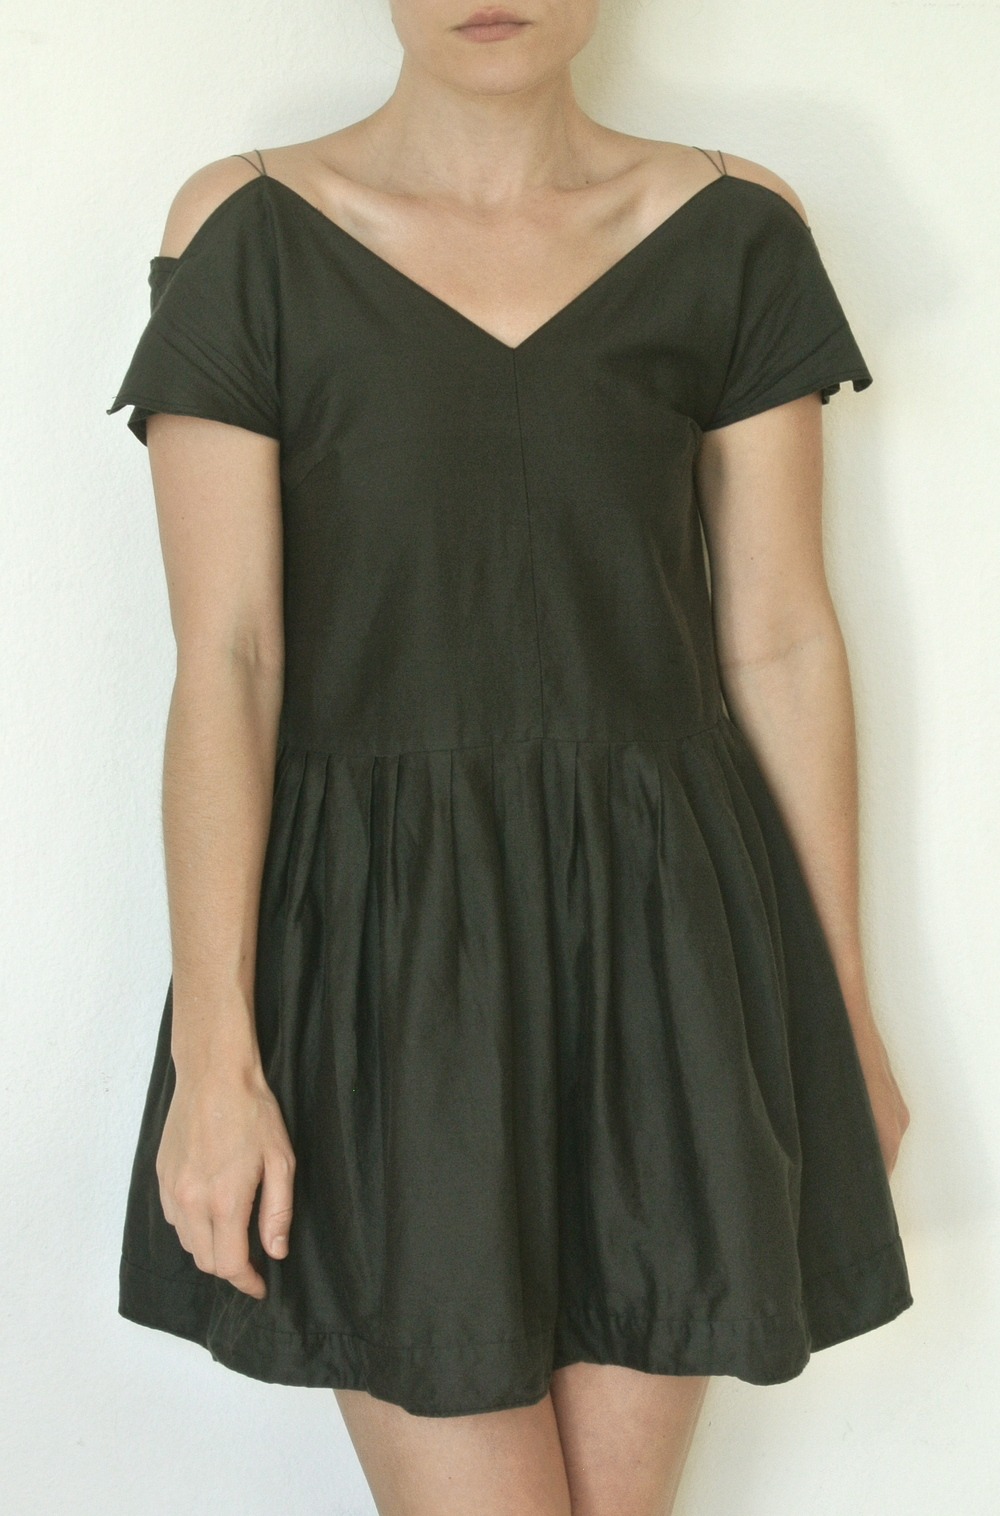 licorice dress